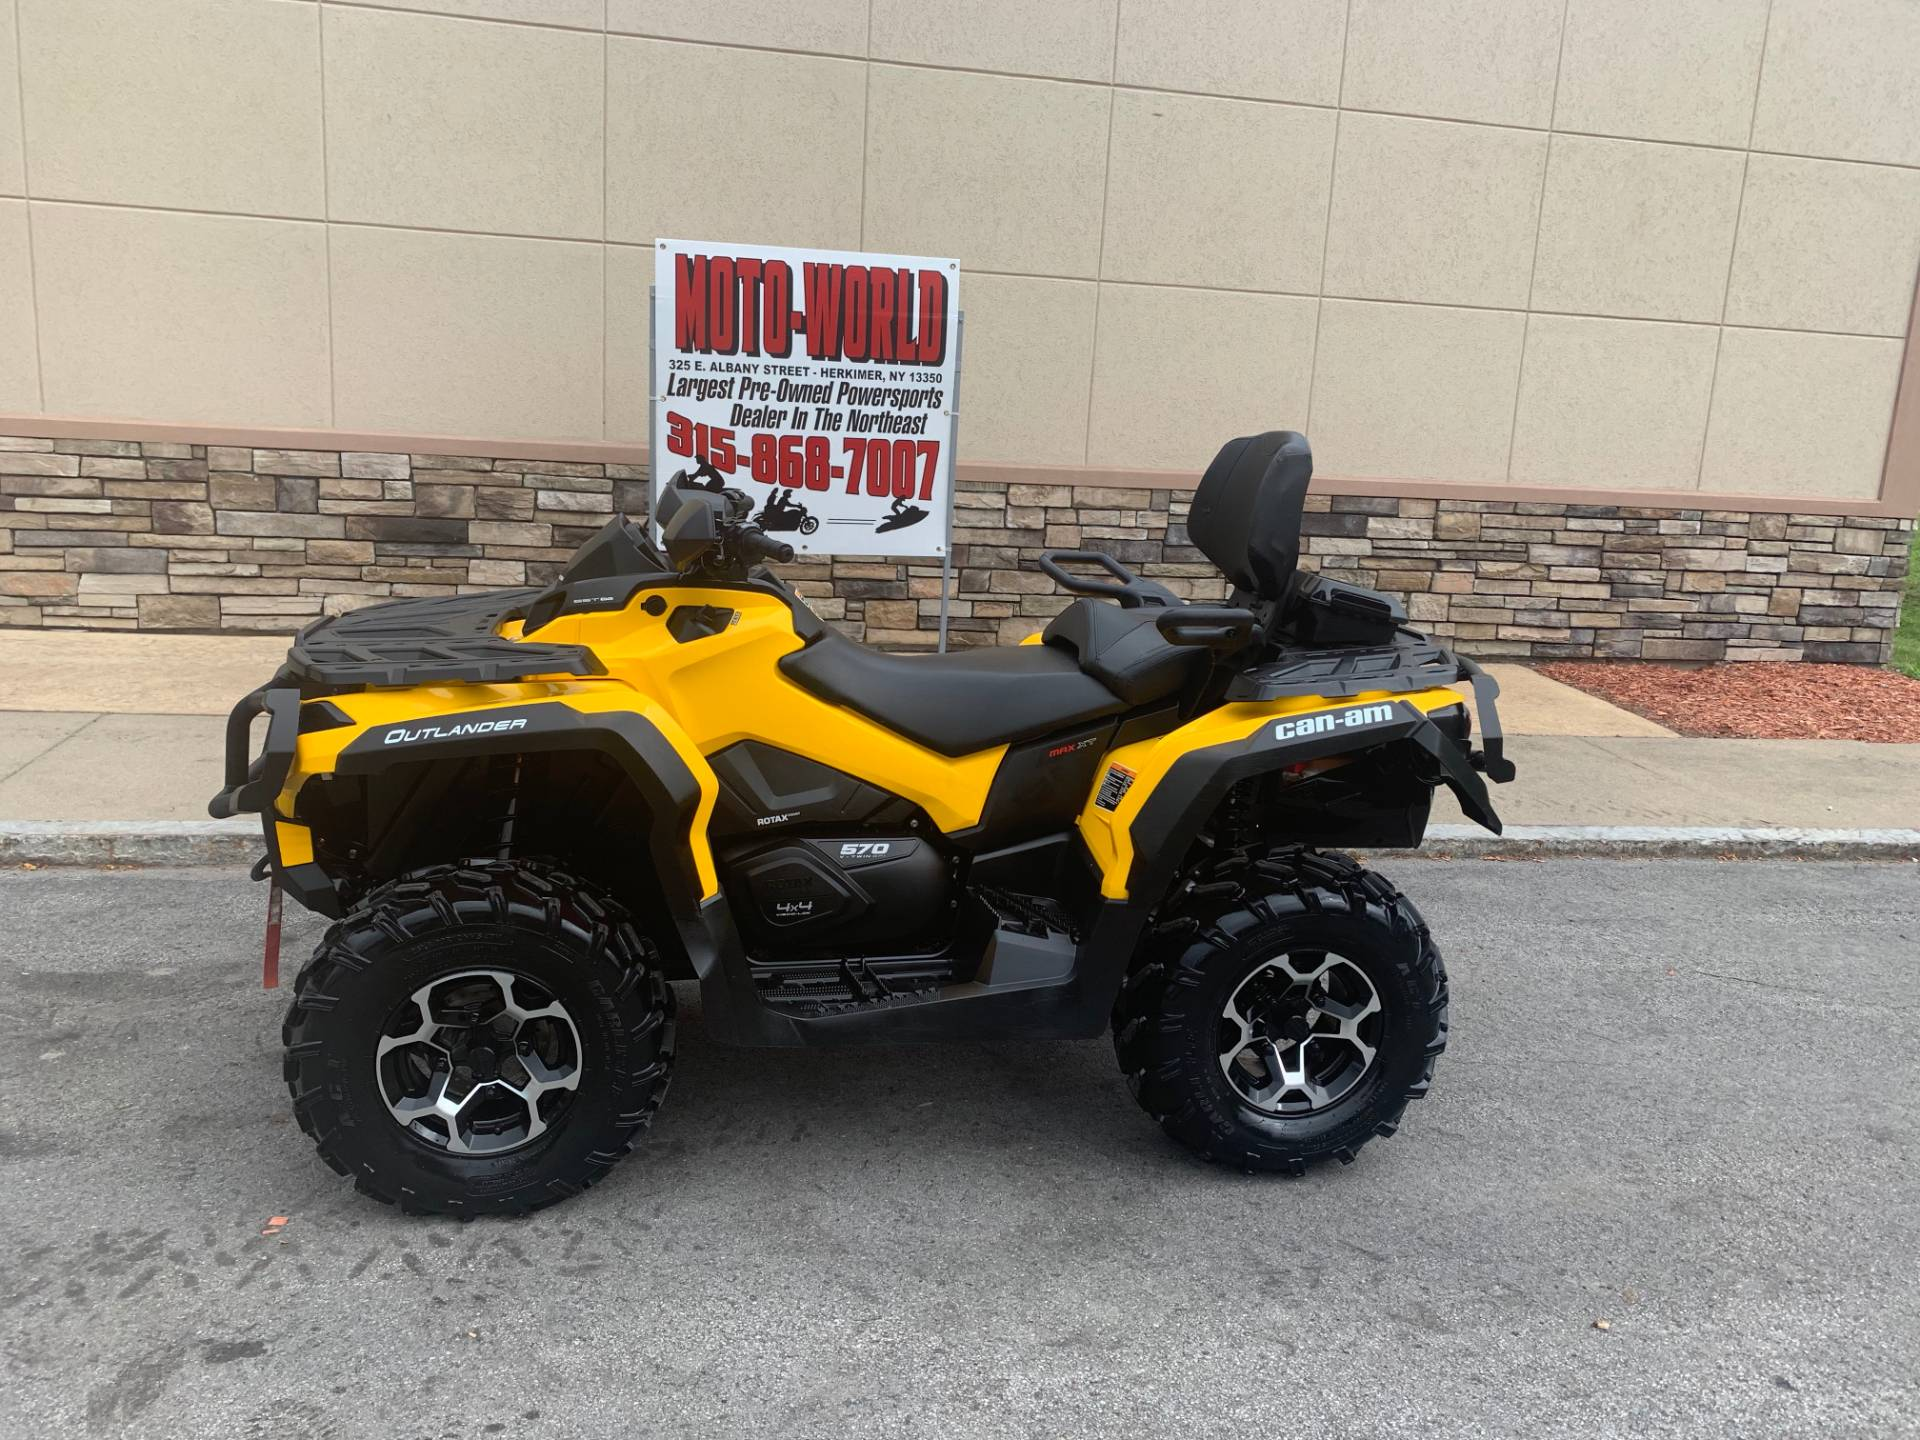 2016 Can-Am Outlander MAX XT 570 in Herkimer, New York - Photo 2